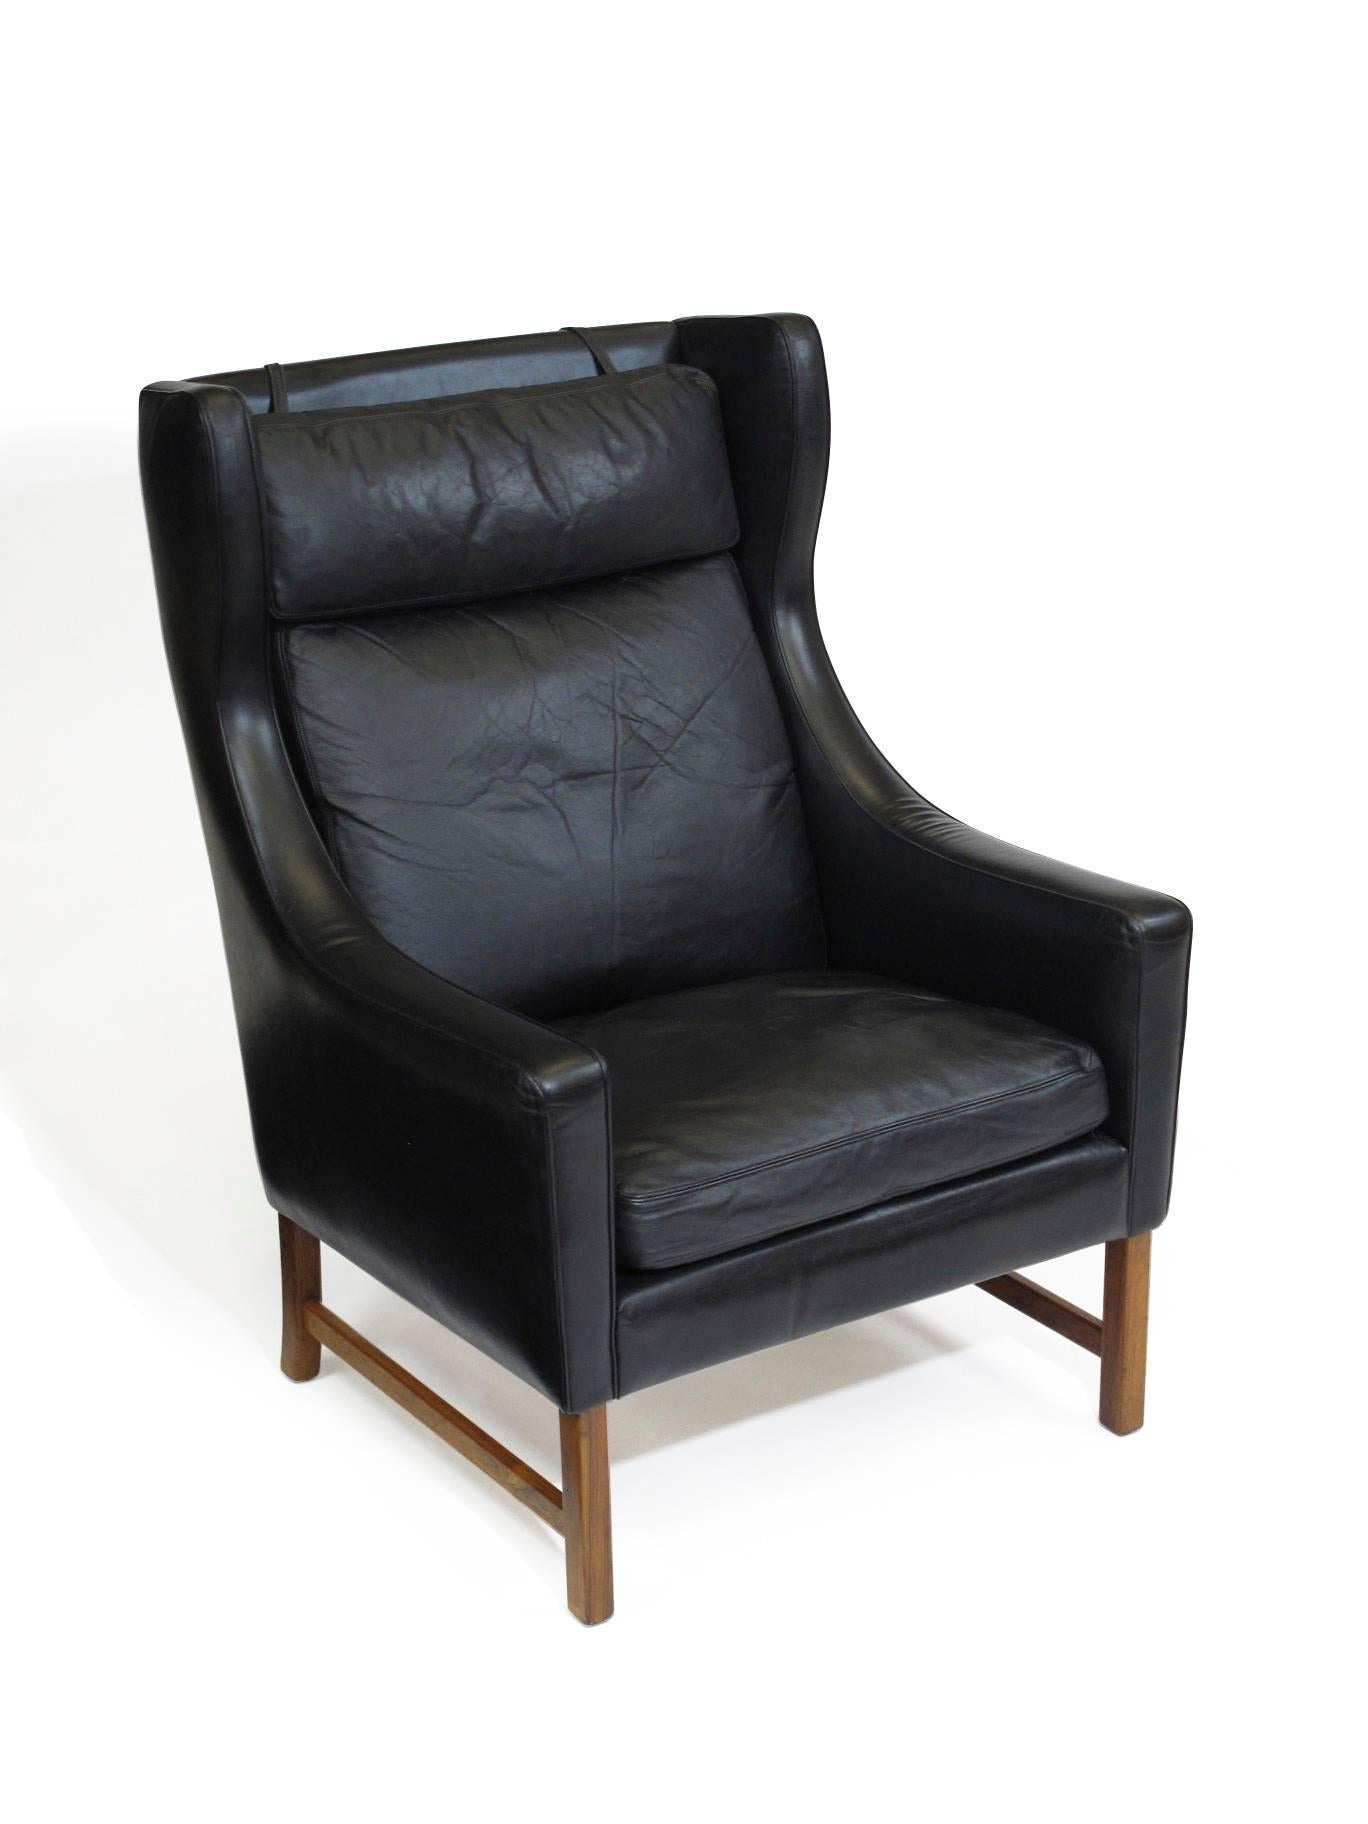 Fredrik Kayser Rosewood And Black Leather High Back Danish - Leather High Back Lounge Chair